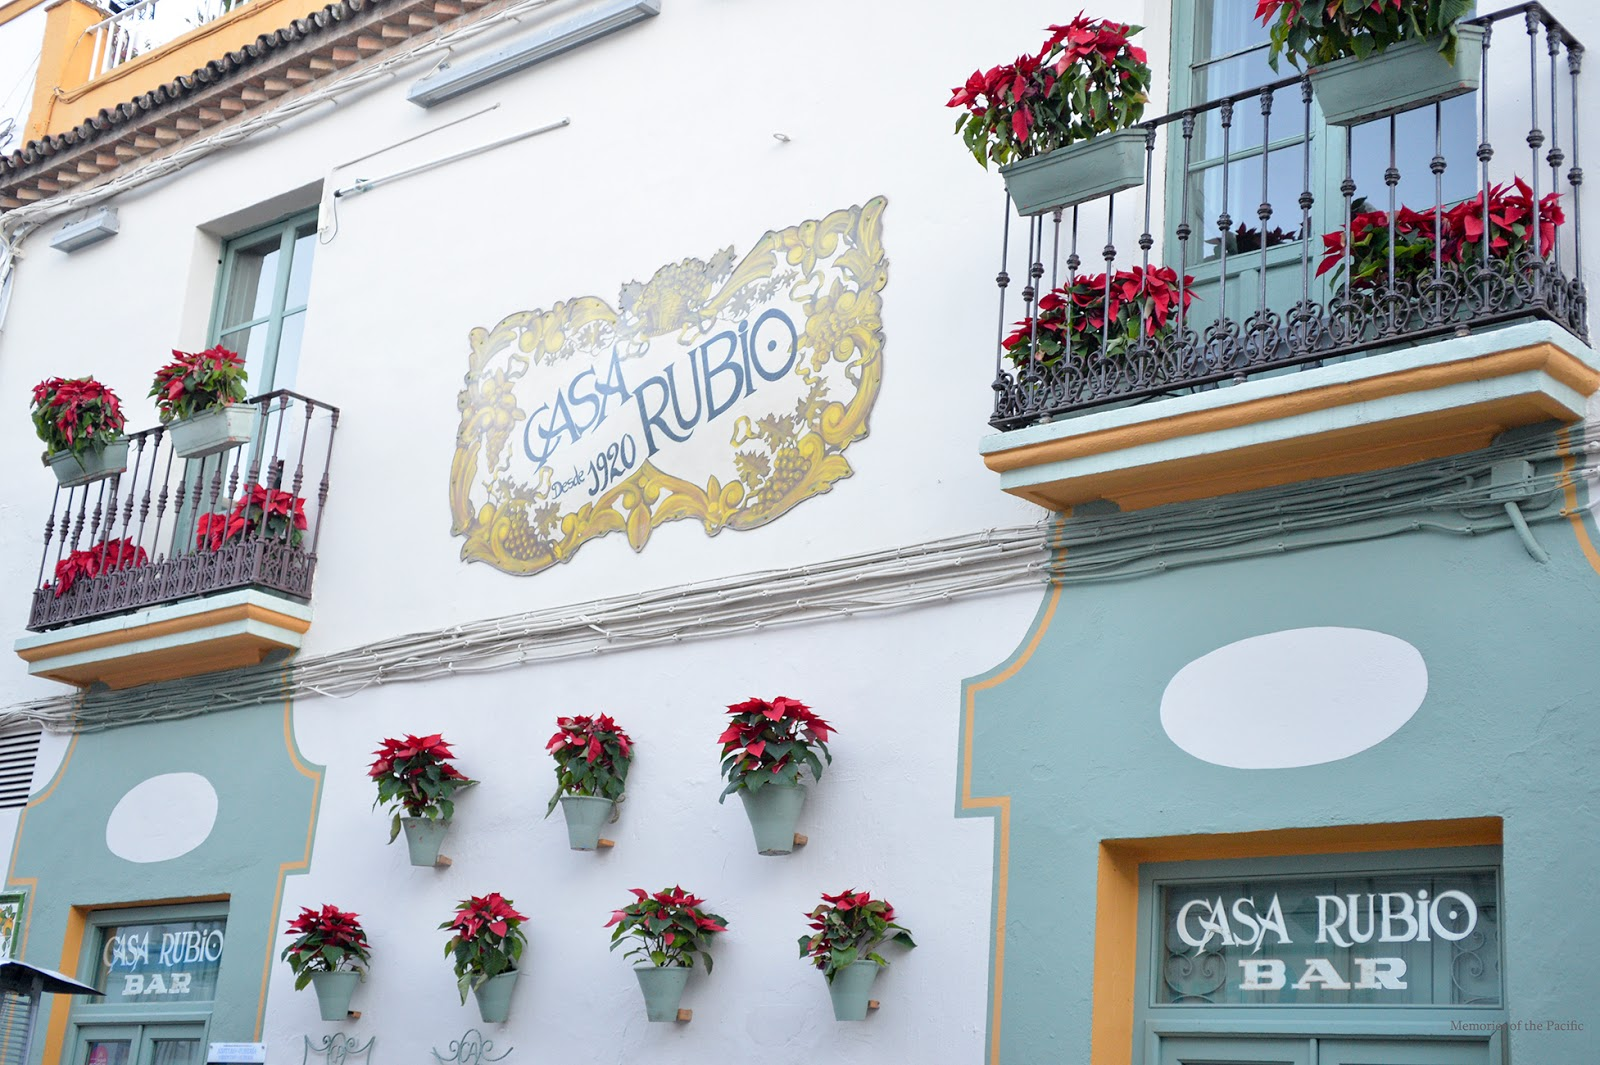 48 hours in Cordoba